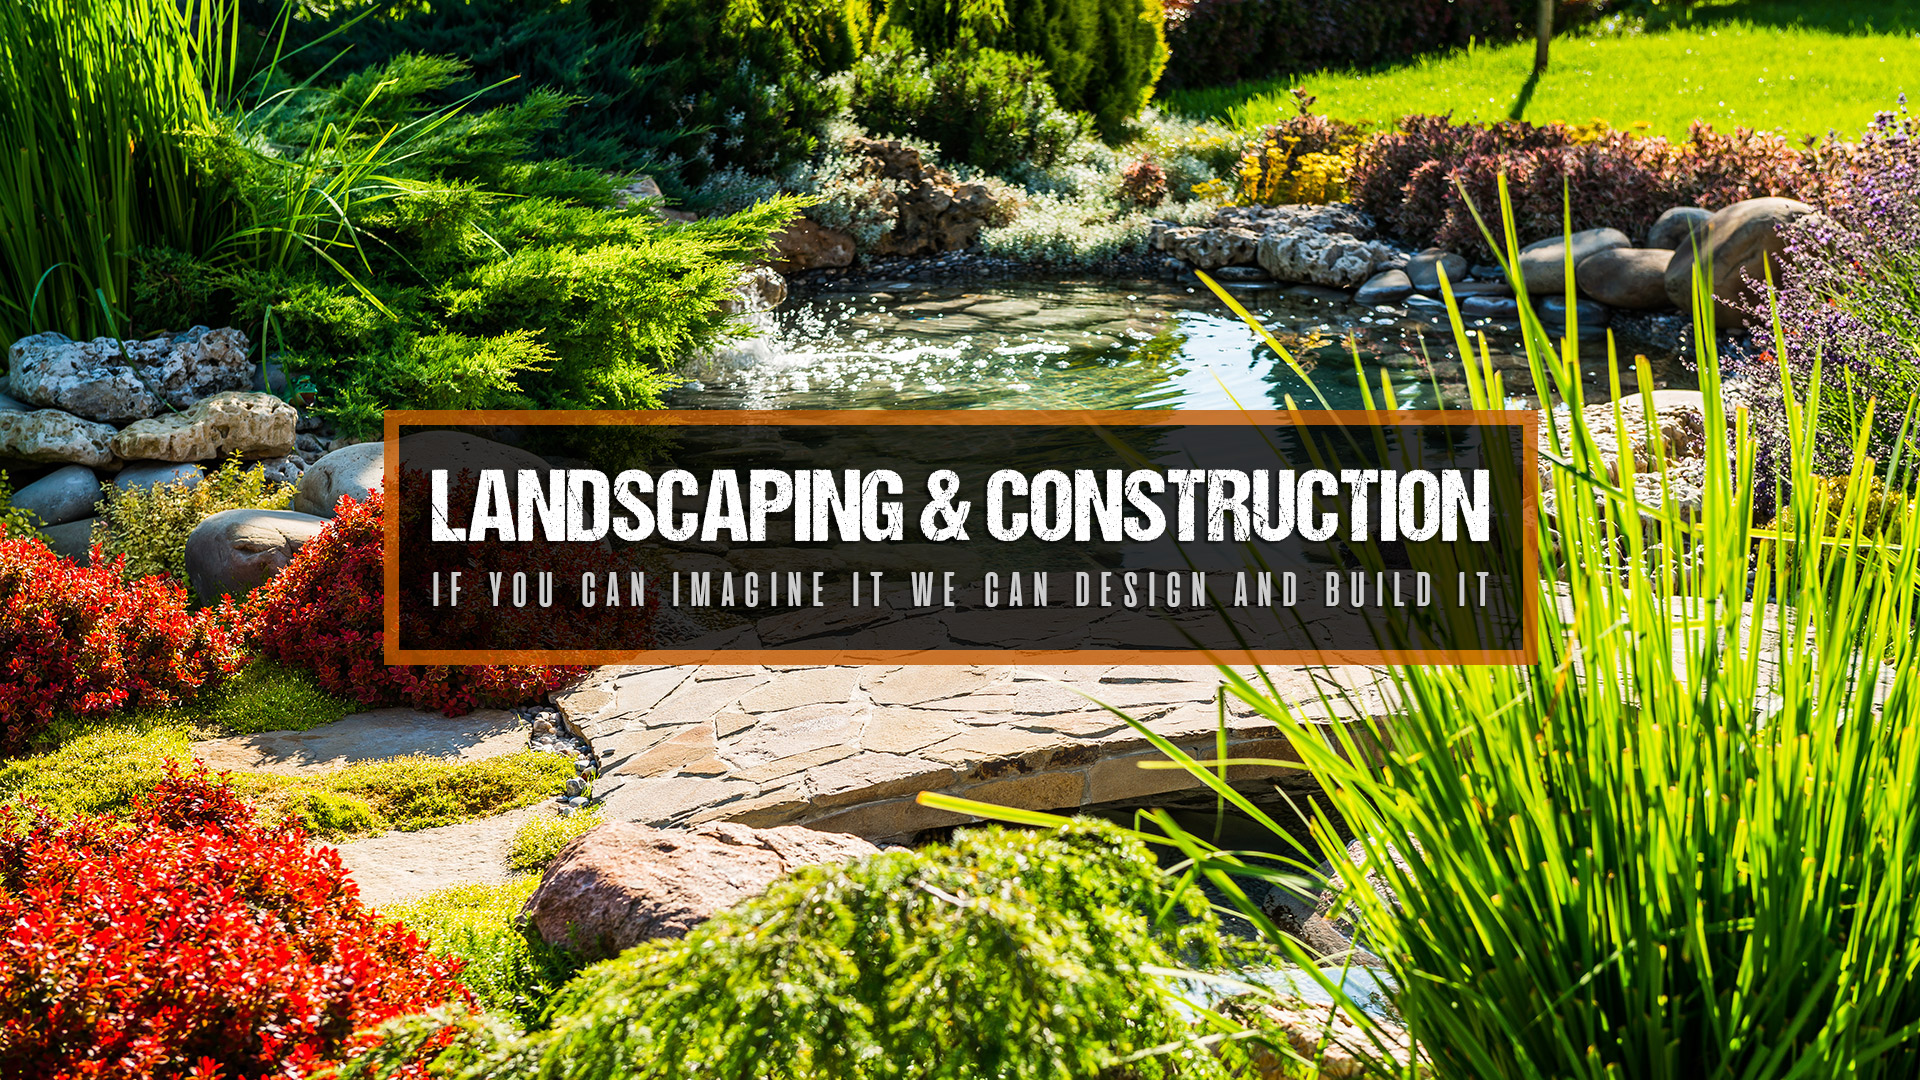 Landscaping & Construction